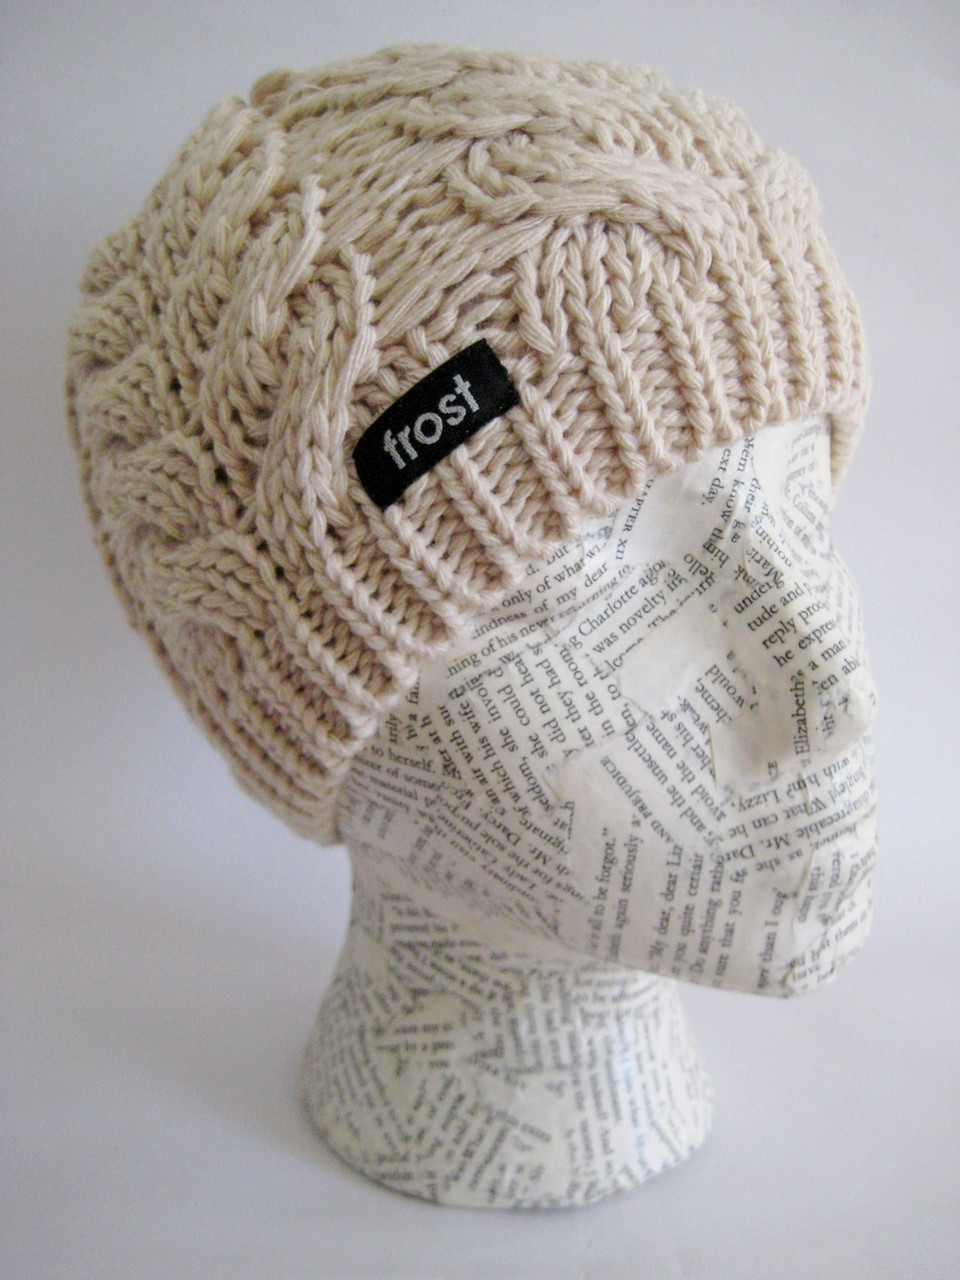 Cable knit beanie hat for women. Loading zoom 8f8c52a1eda